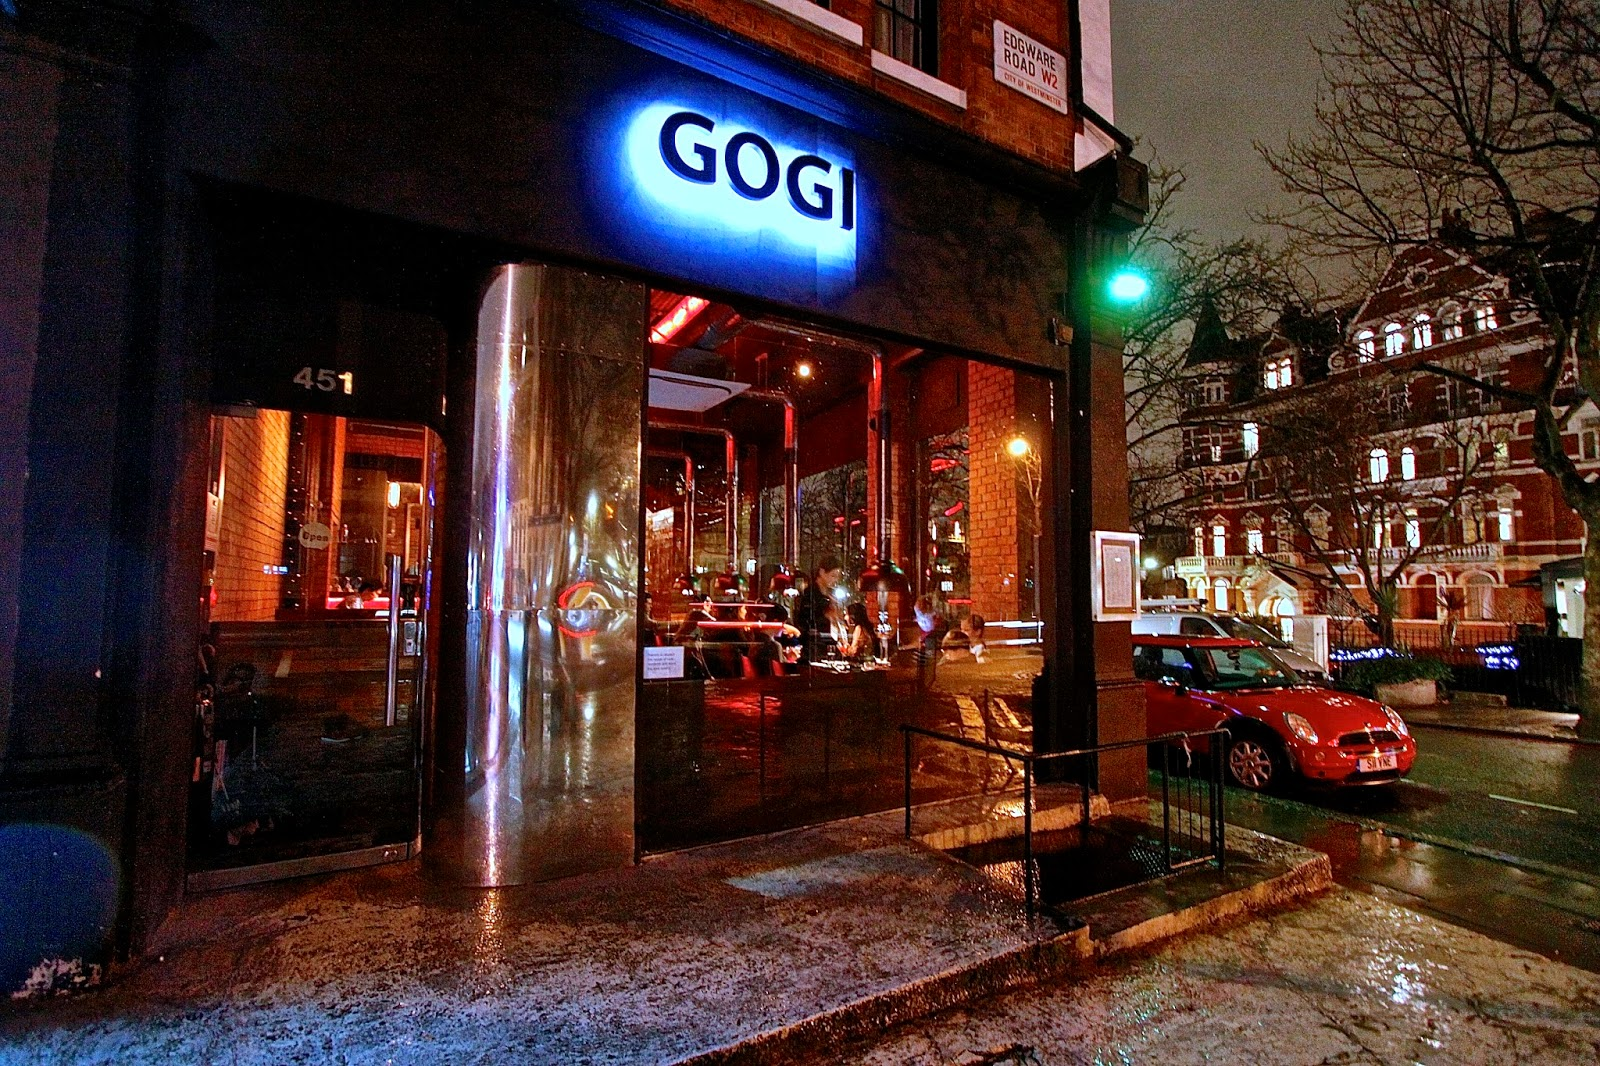 The London Foodie Little Venice Gangnam Style At Gogi